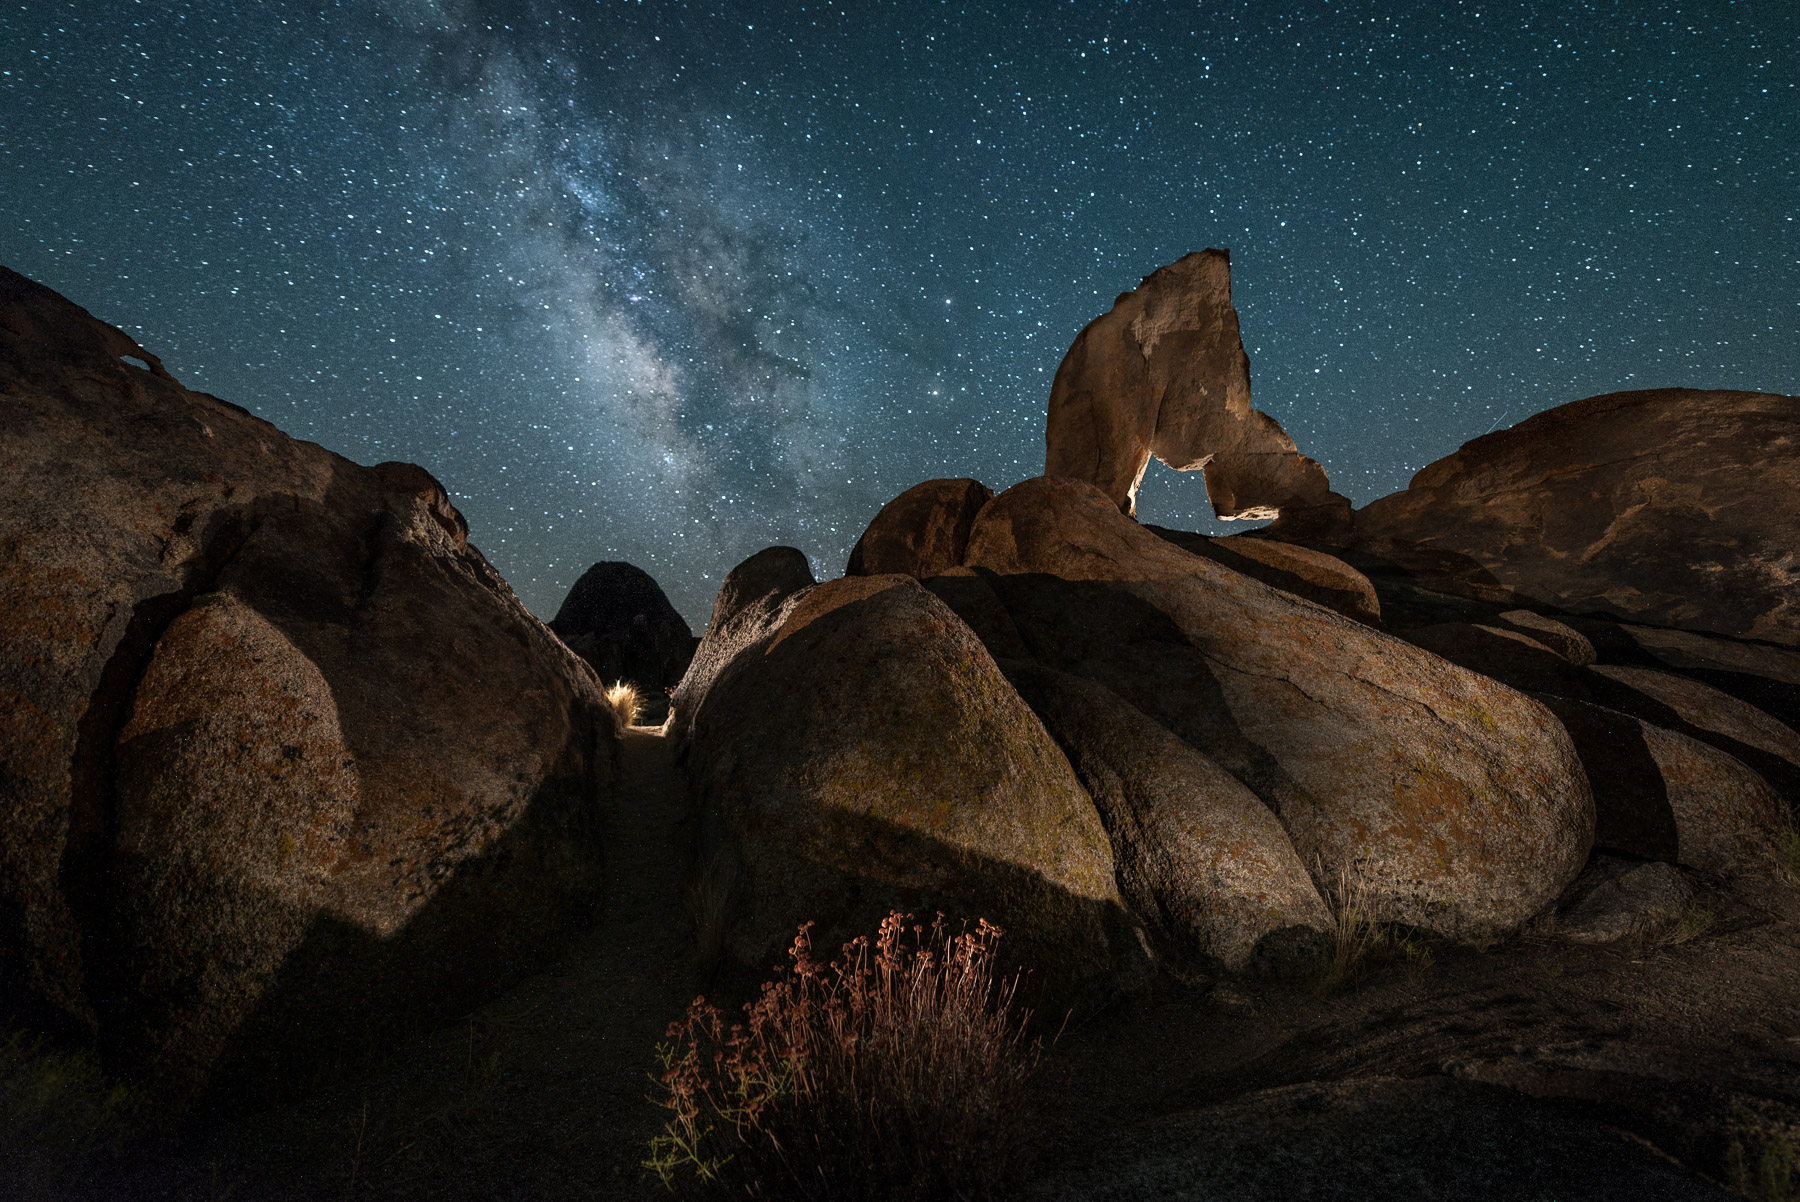 The Alabama Hills in California's Eastern Sierra are a great location for night photography and light painting.